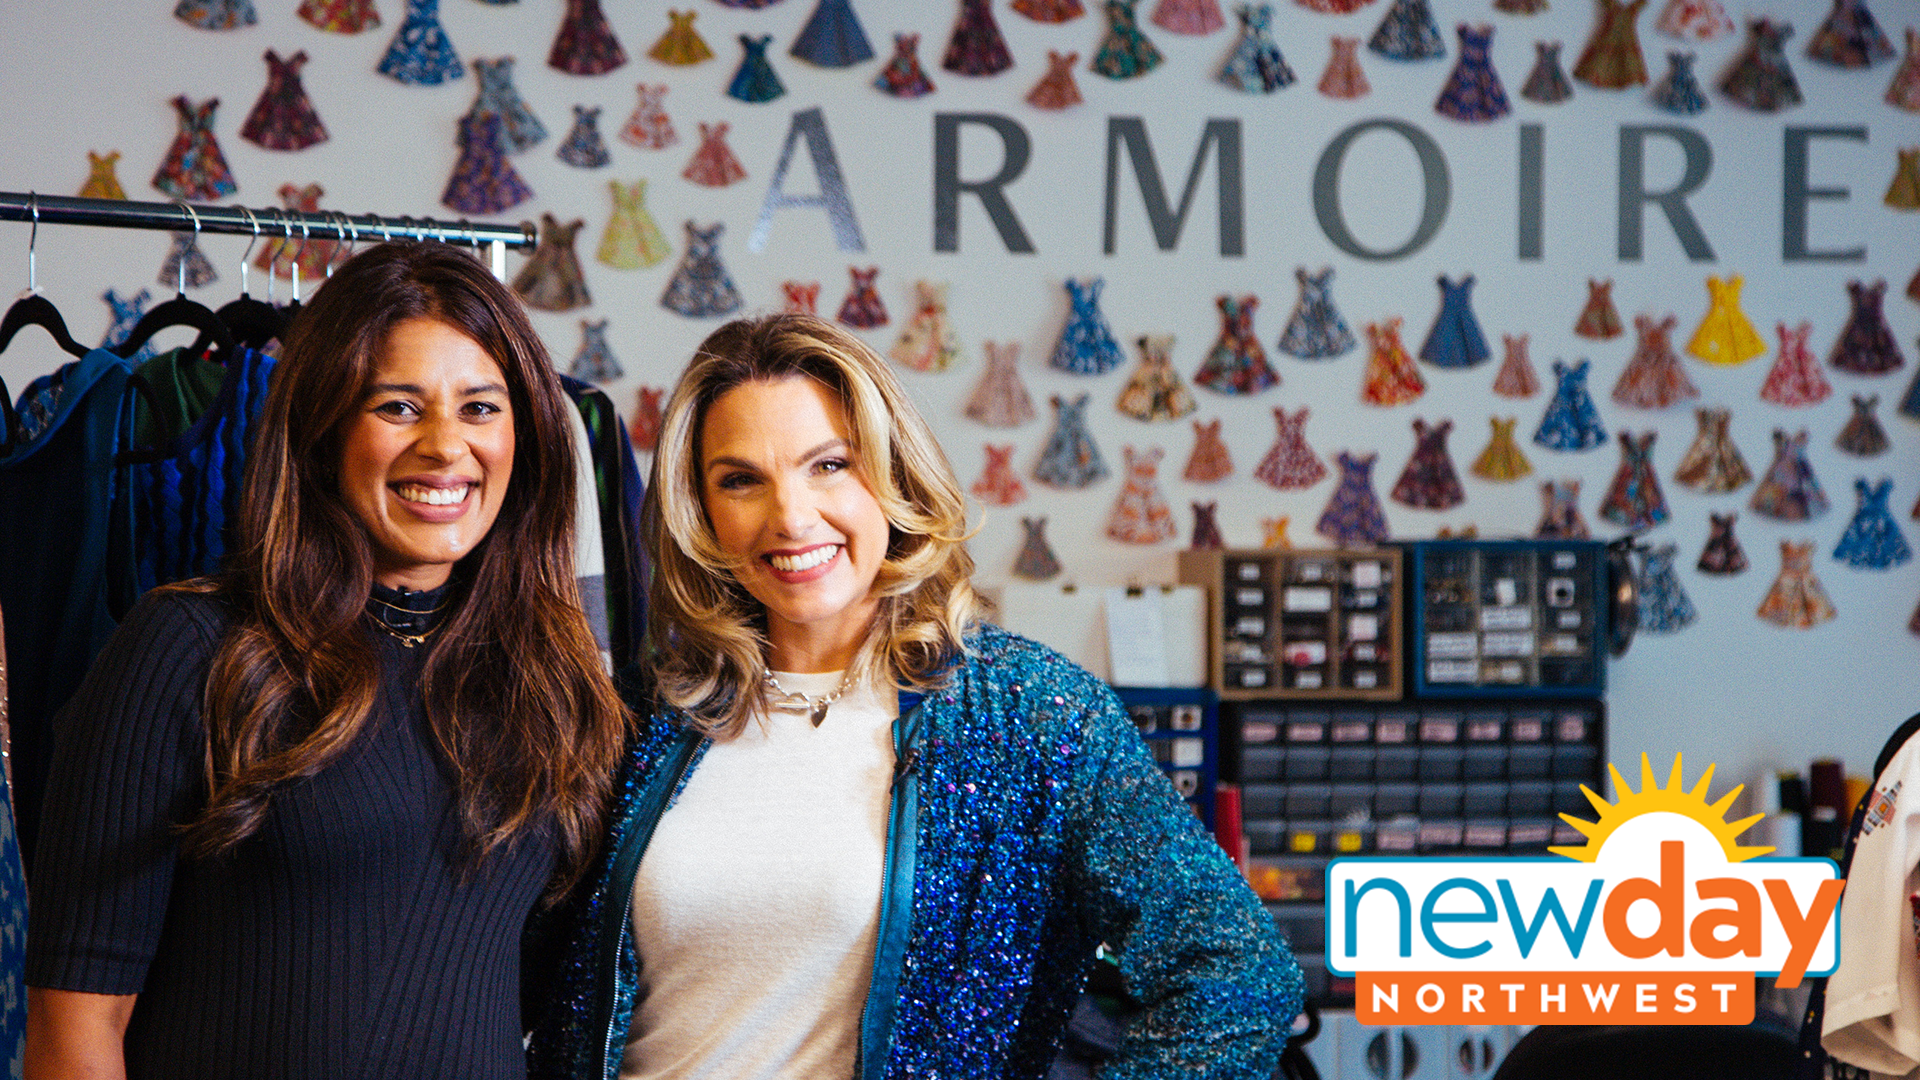 Armoire CEO Ambika Singh and KING 5 TV Host Amity Addrisi meet at Armoire headquarters to talk about back to work style.